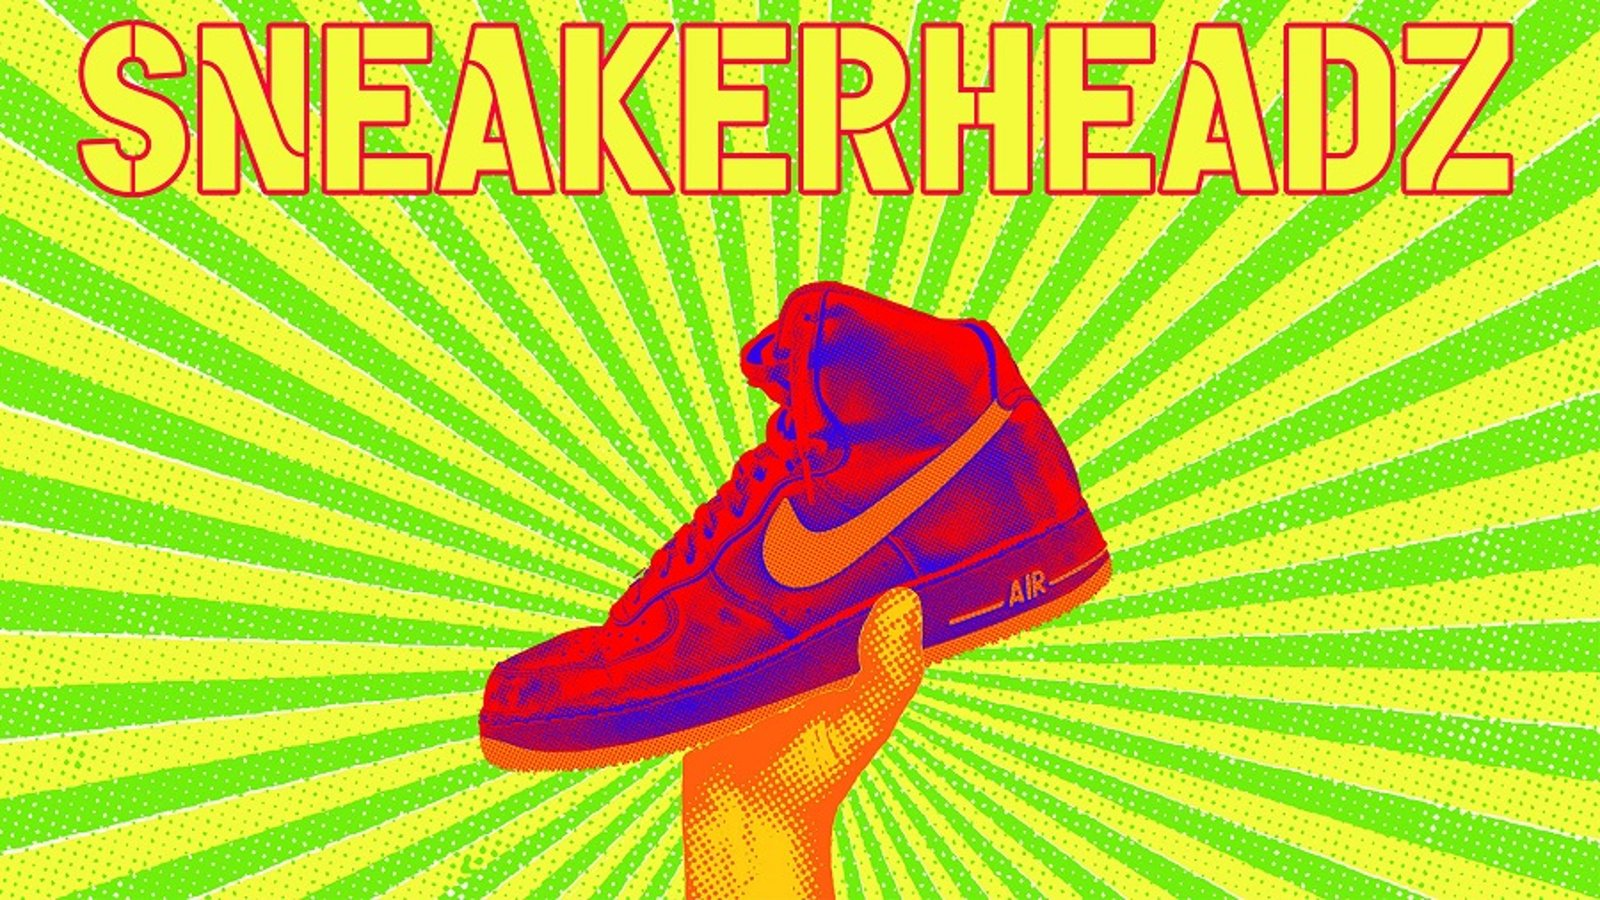 Sneakerheadz - The Explosive Subculture of Sneaker Collecting